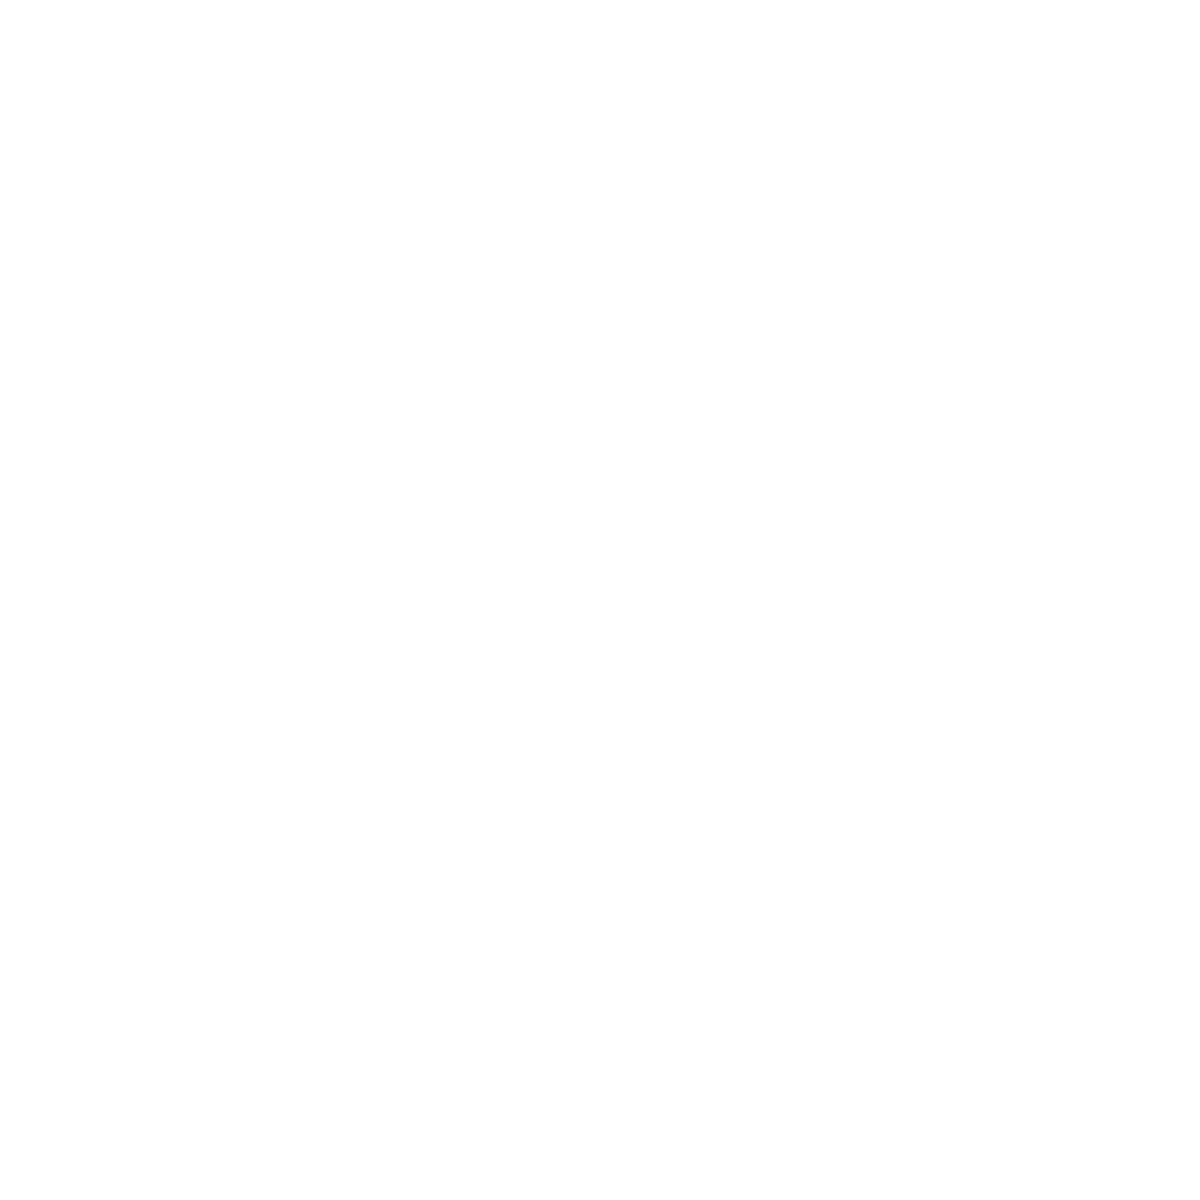 human head with cog indicating thinking